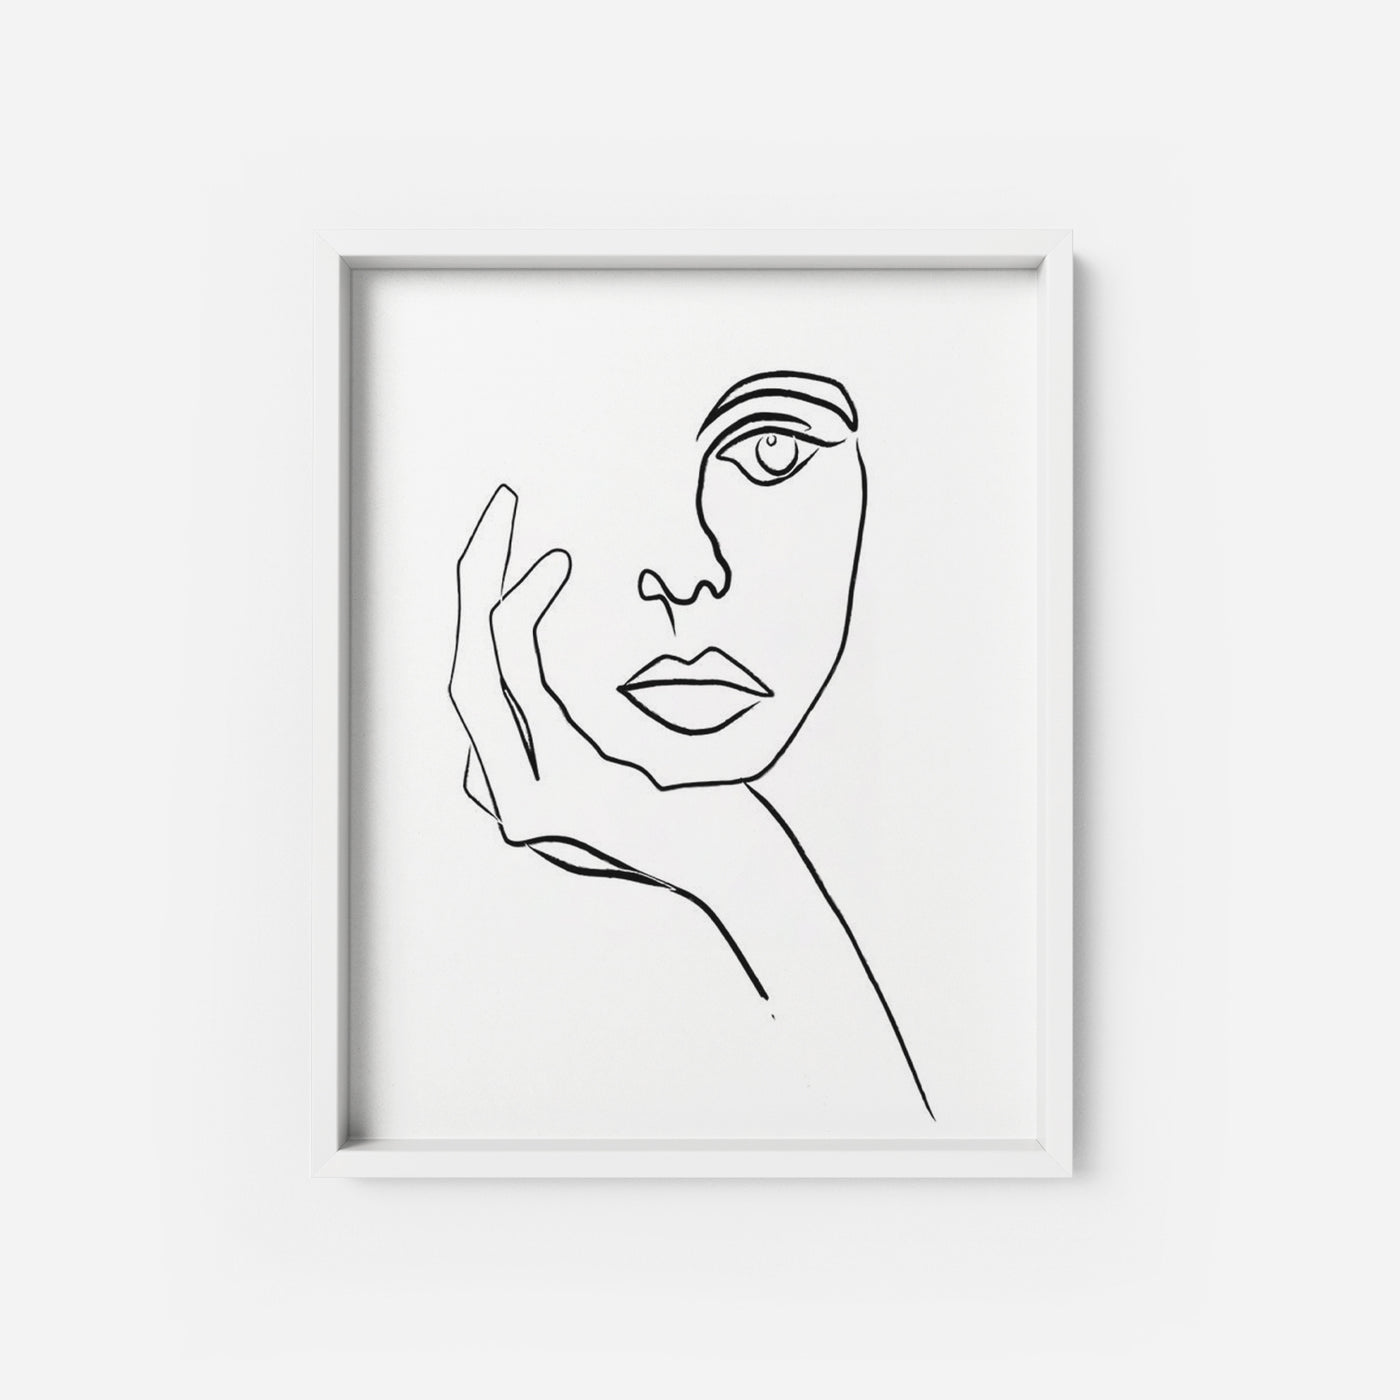 image relating to Black and White Printable Art titled The Thinker